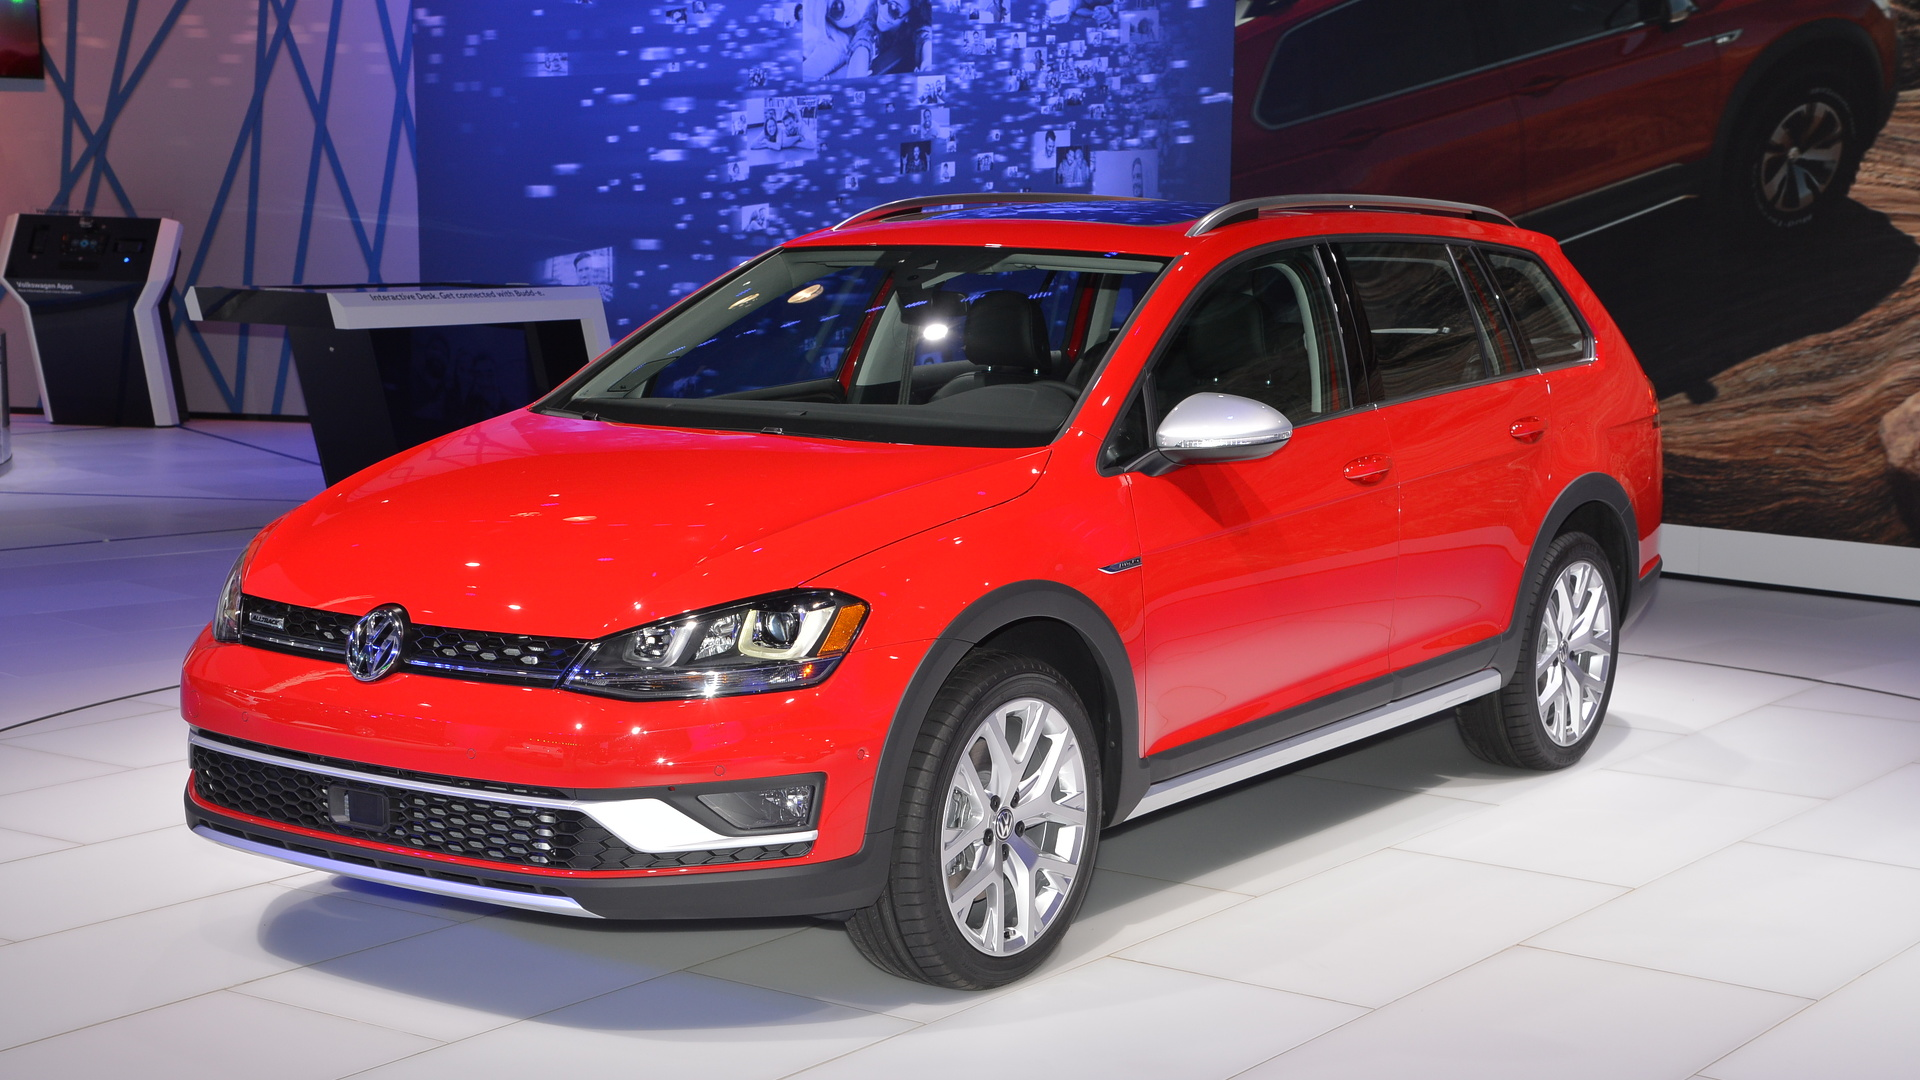 2017 vw golf alltrack arrives as production model in new york. Black Bedroom Furniture Sets. Home Design Ideas